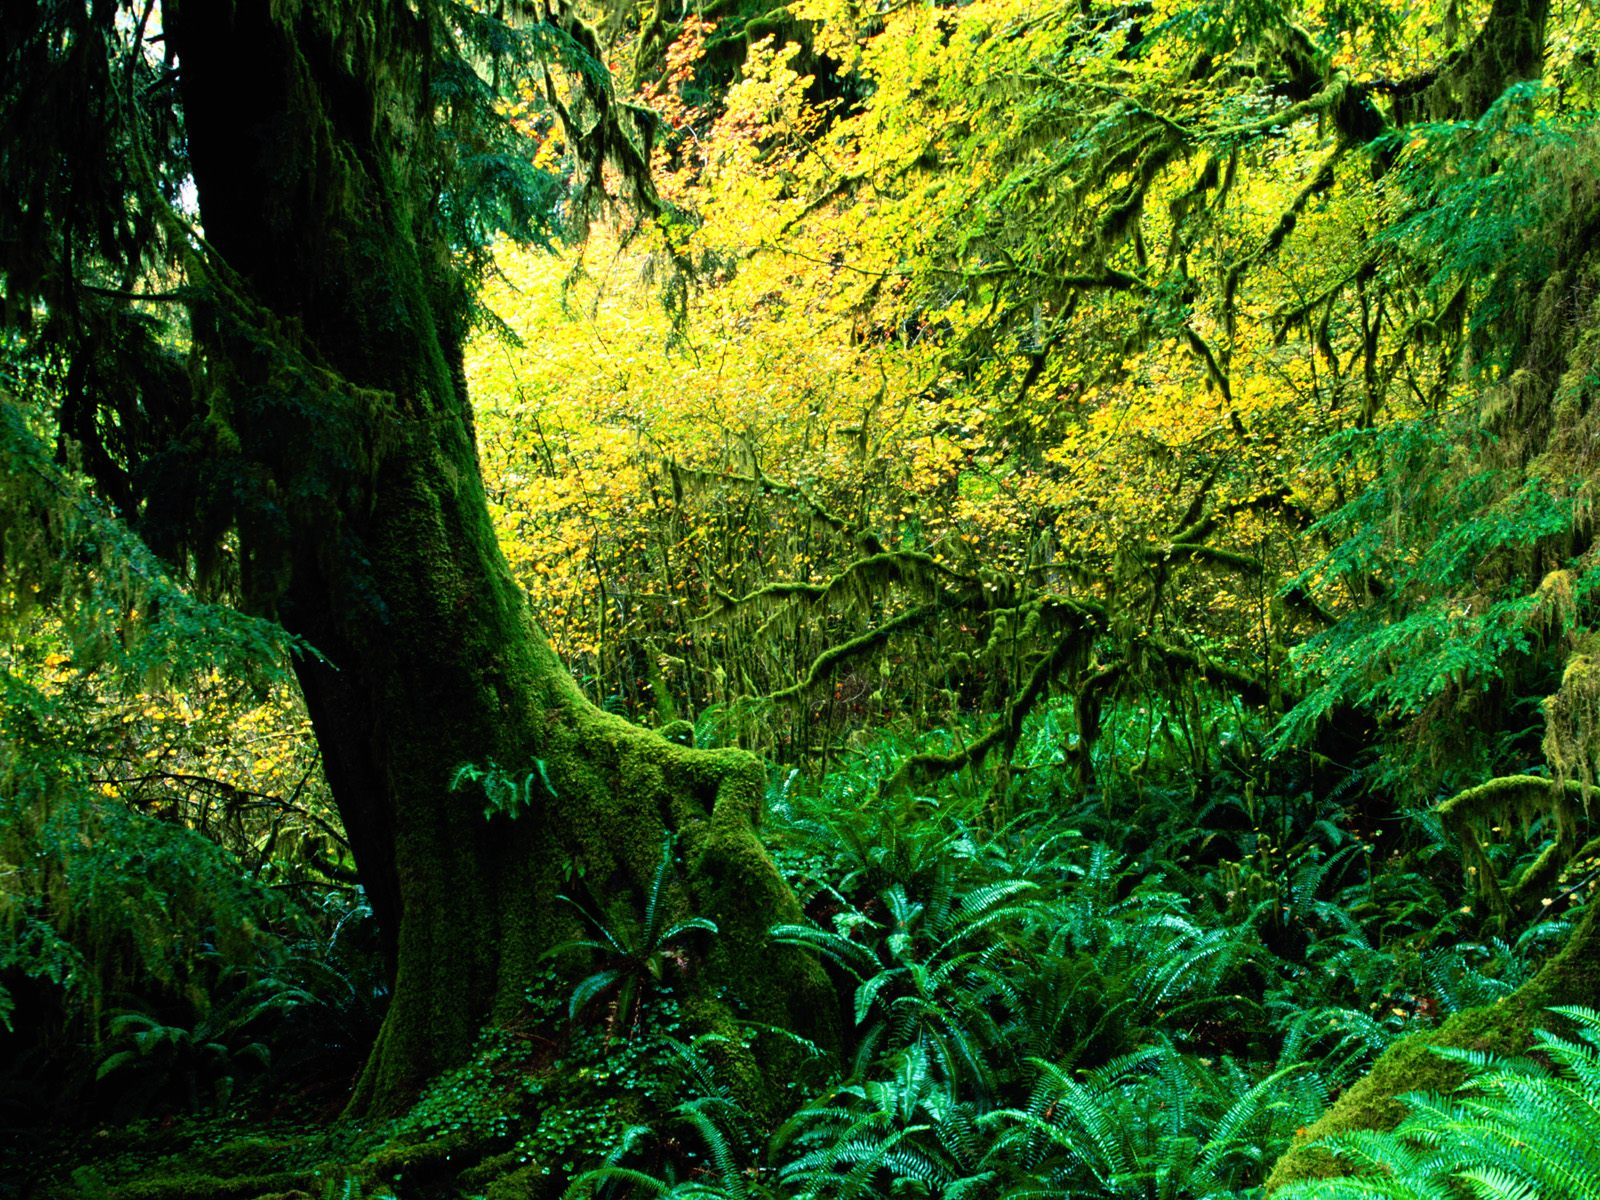 external image Hoh%20Rainforest,%20Olympic%20National%20Park,%20Washington.jpg